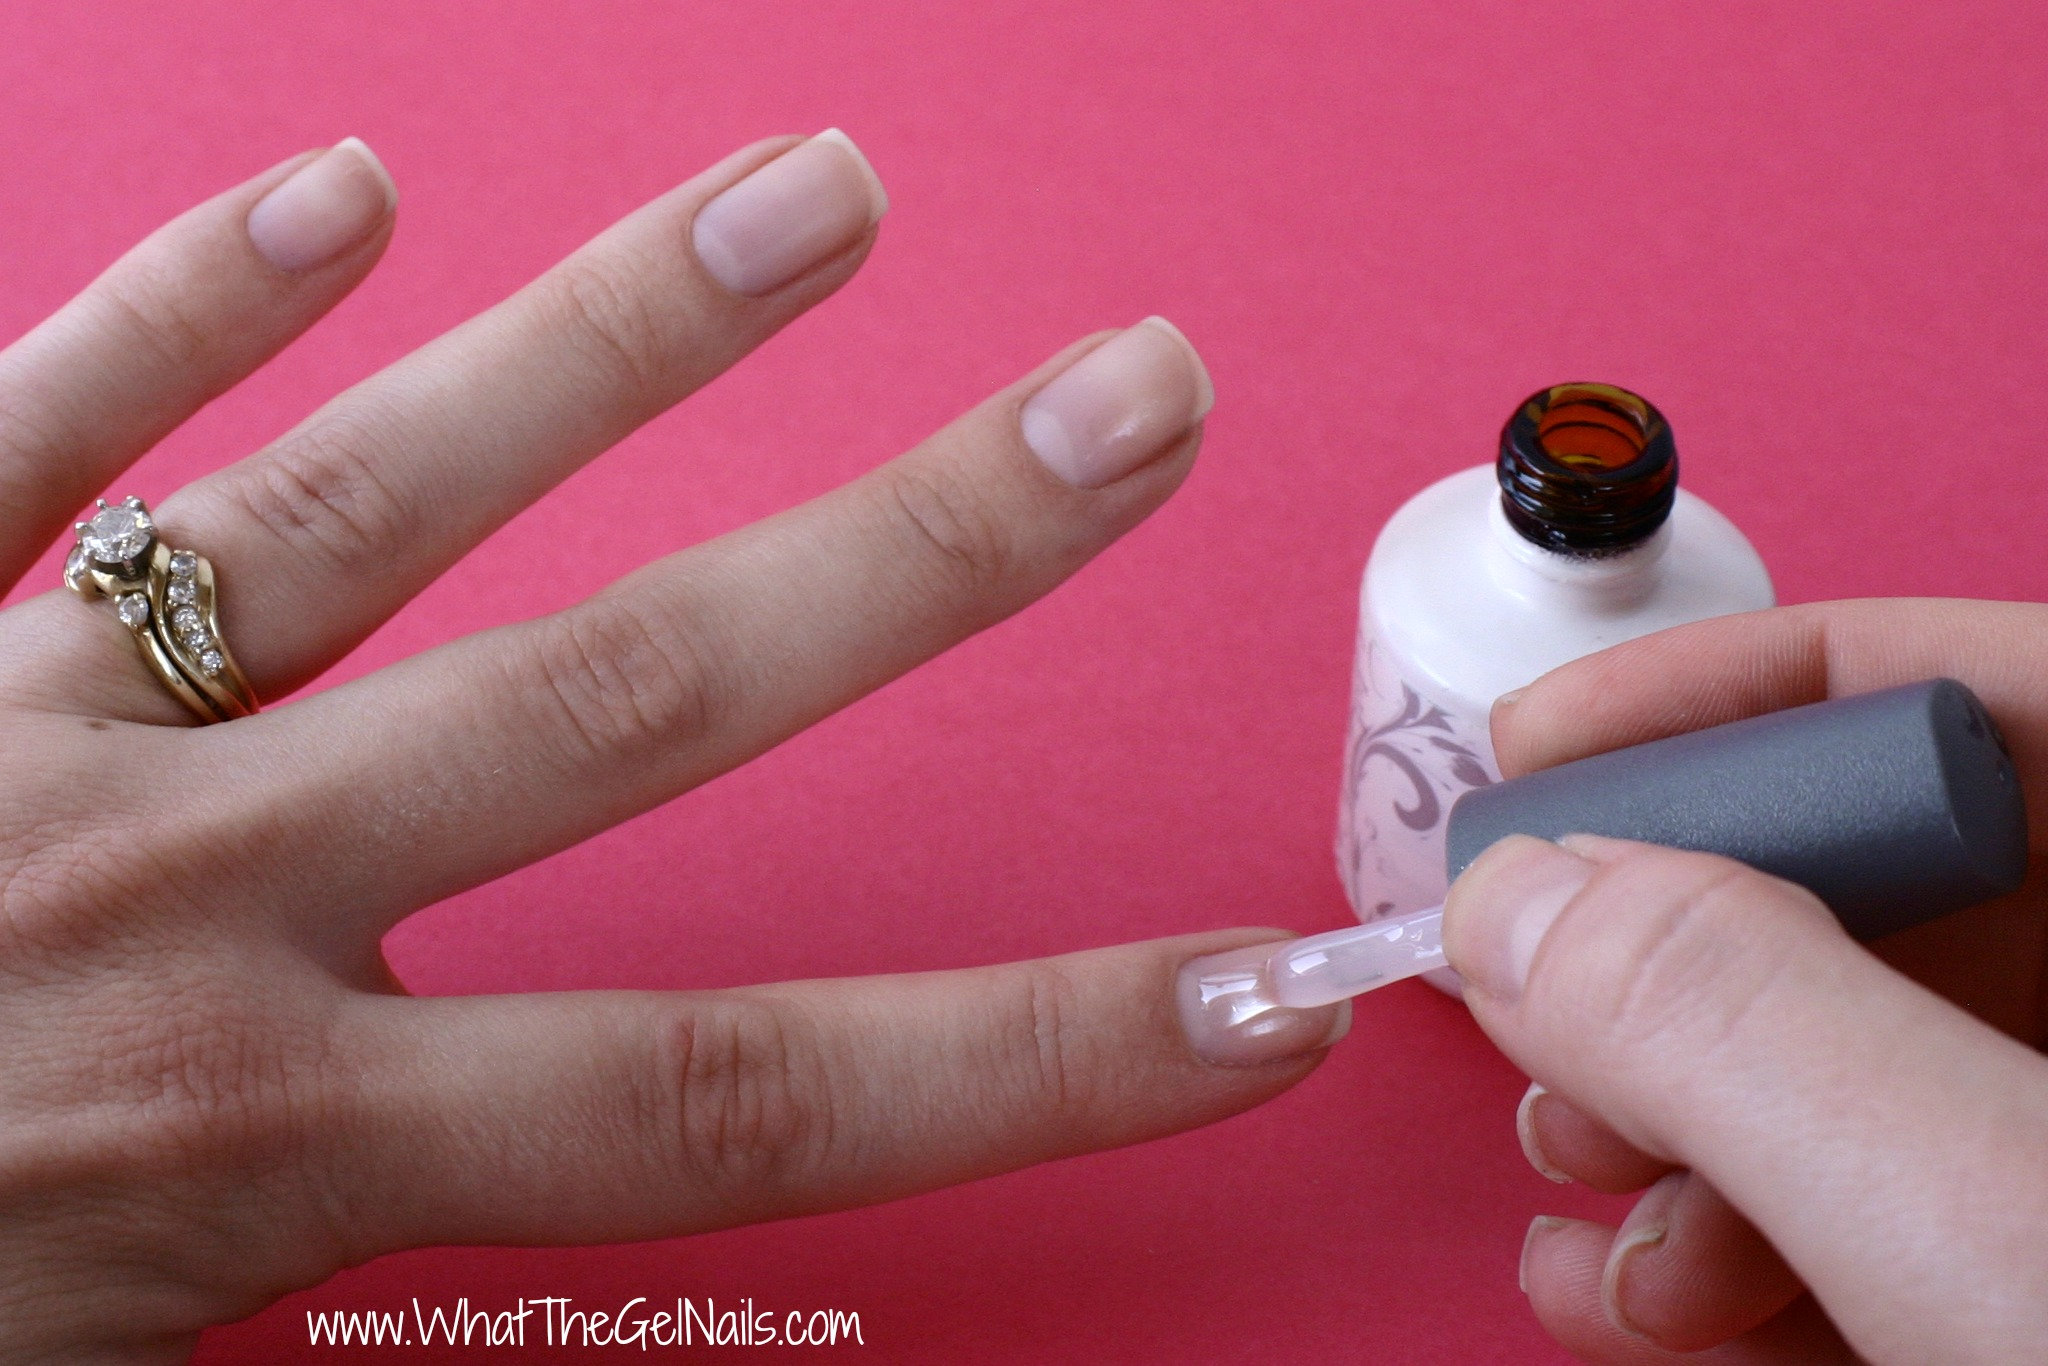 How To Do Gel Nails At Home Paint On Base Coat And Cure In Uv